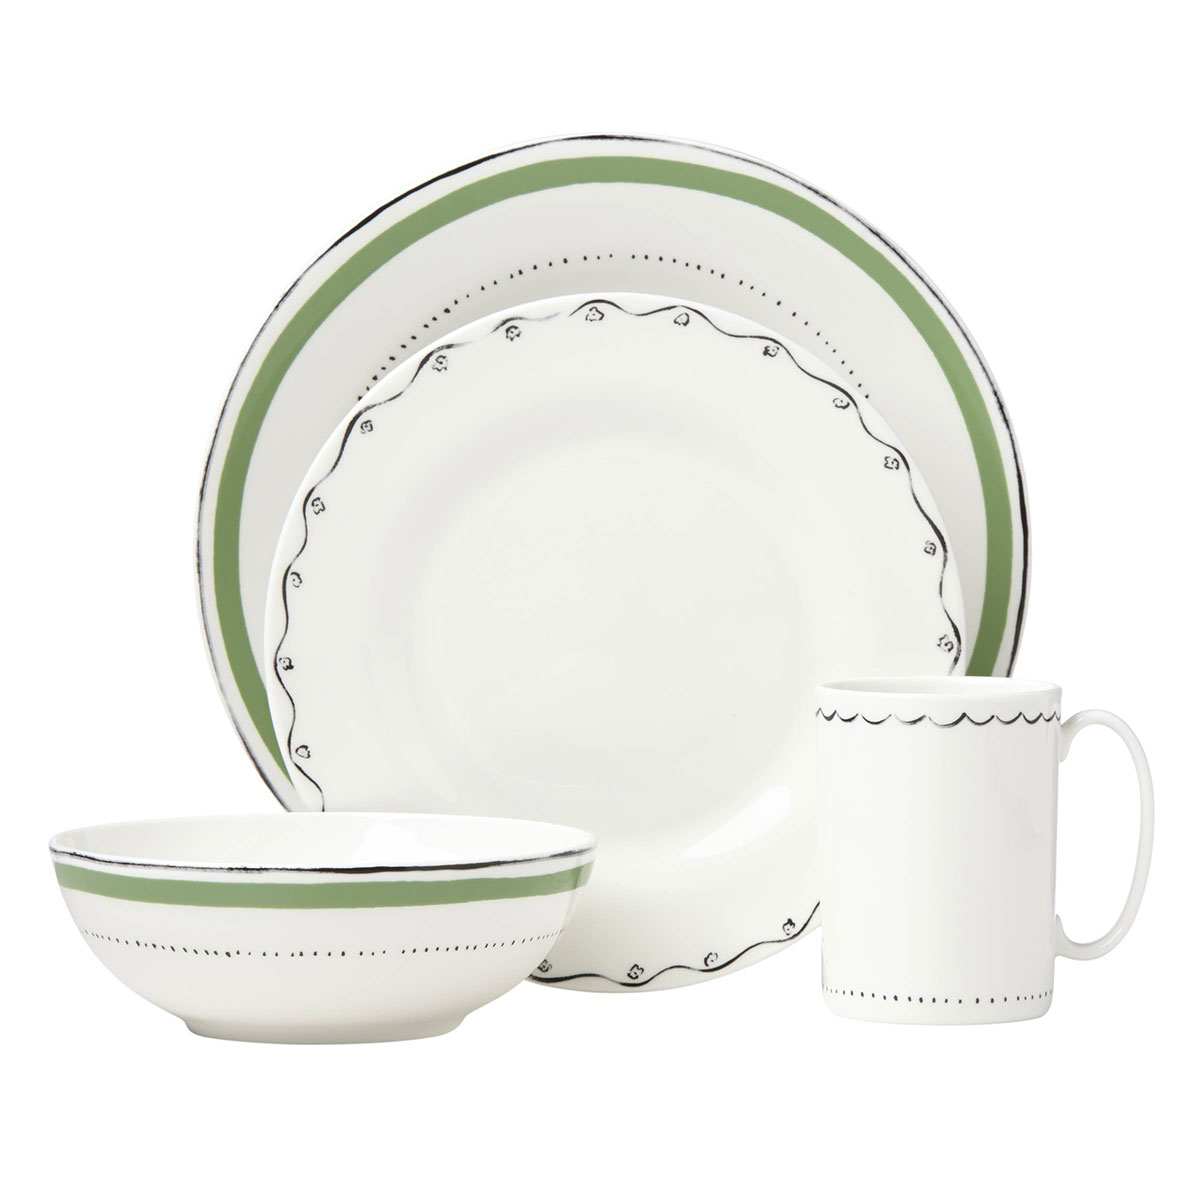 Kate Spade New York, Lenox Union Square Green 4 Piece Place Setting